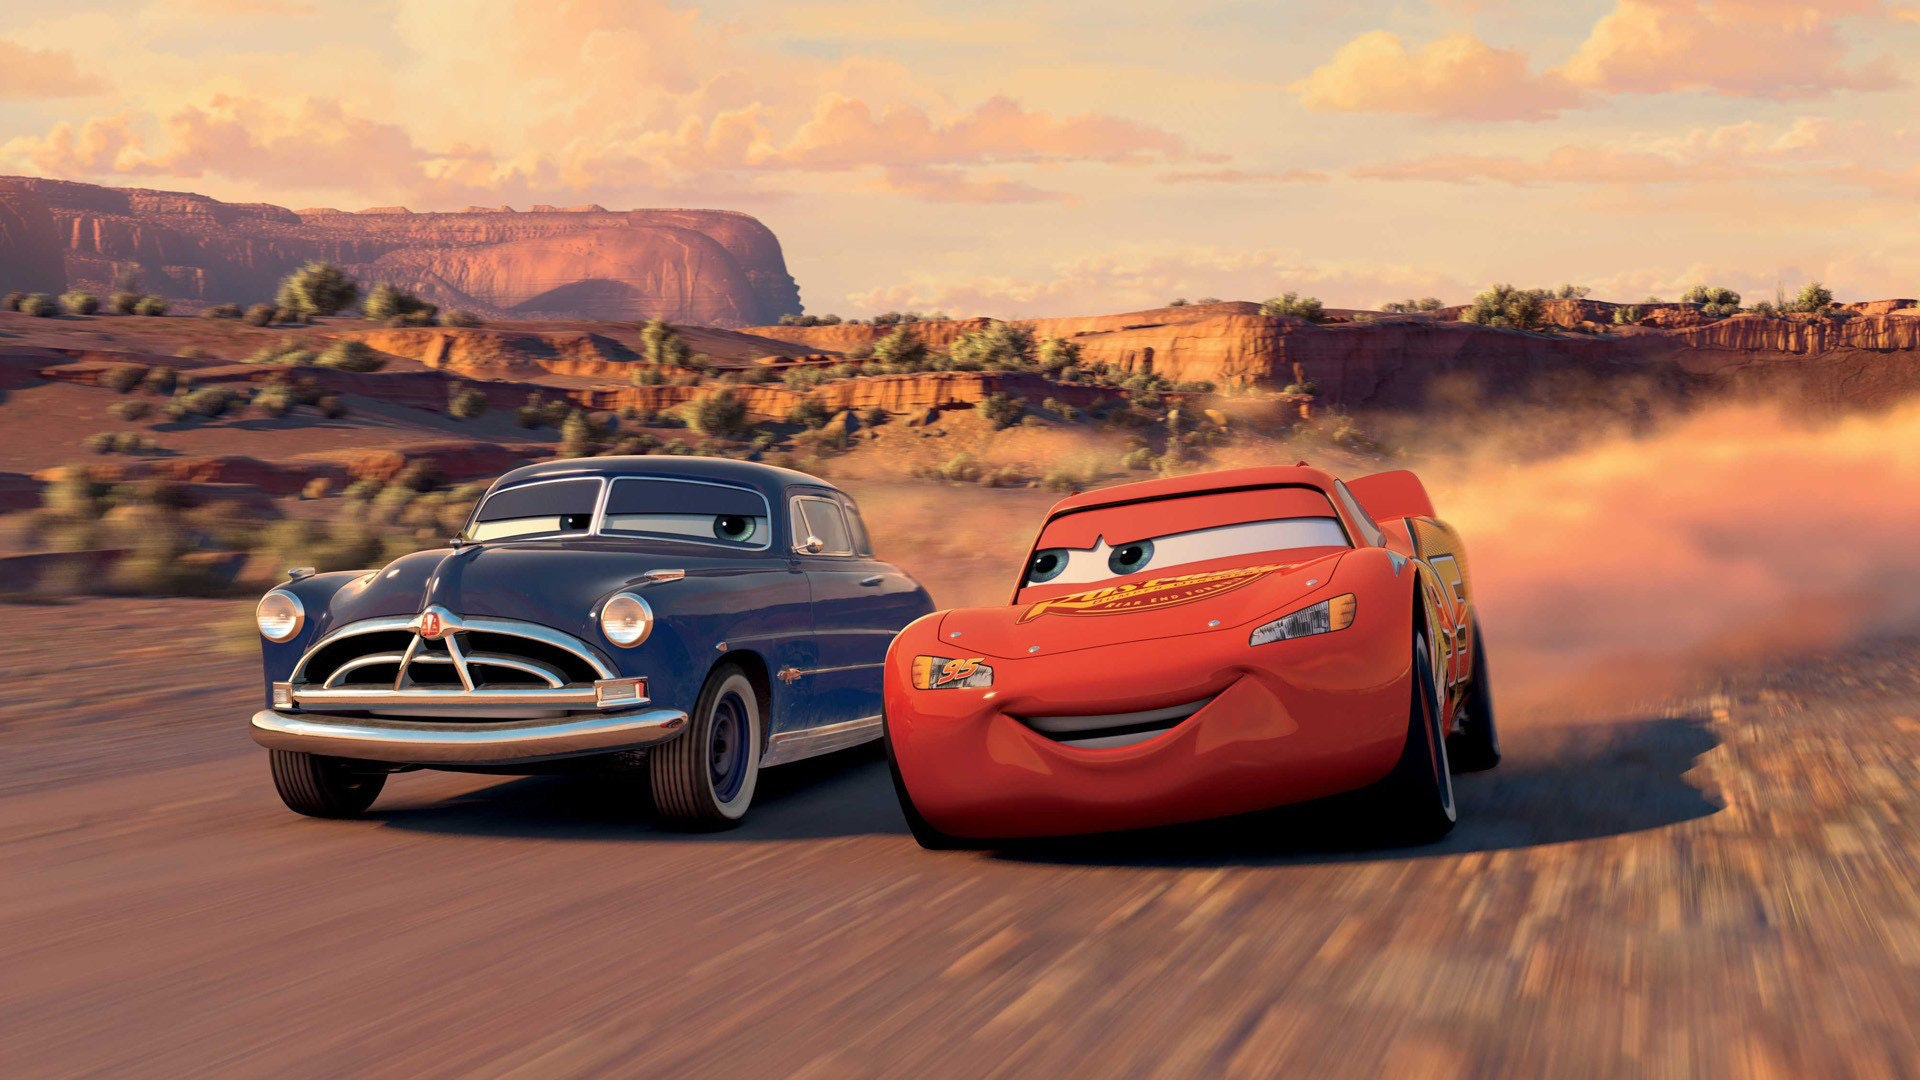 Lighting Mcqueen Movie Youtube Meet Cruz Remirez On Pixar